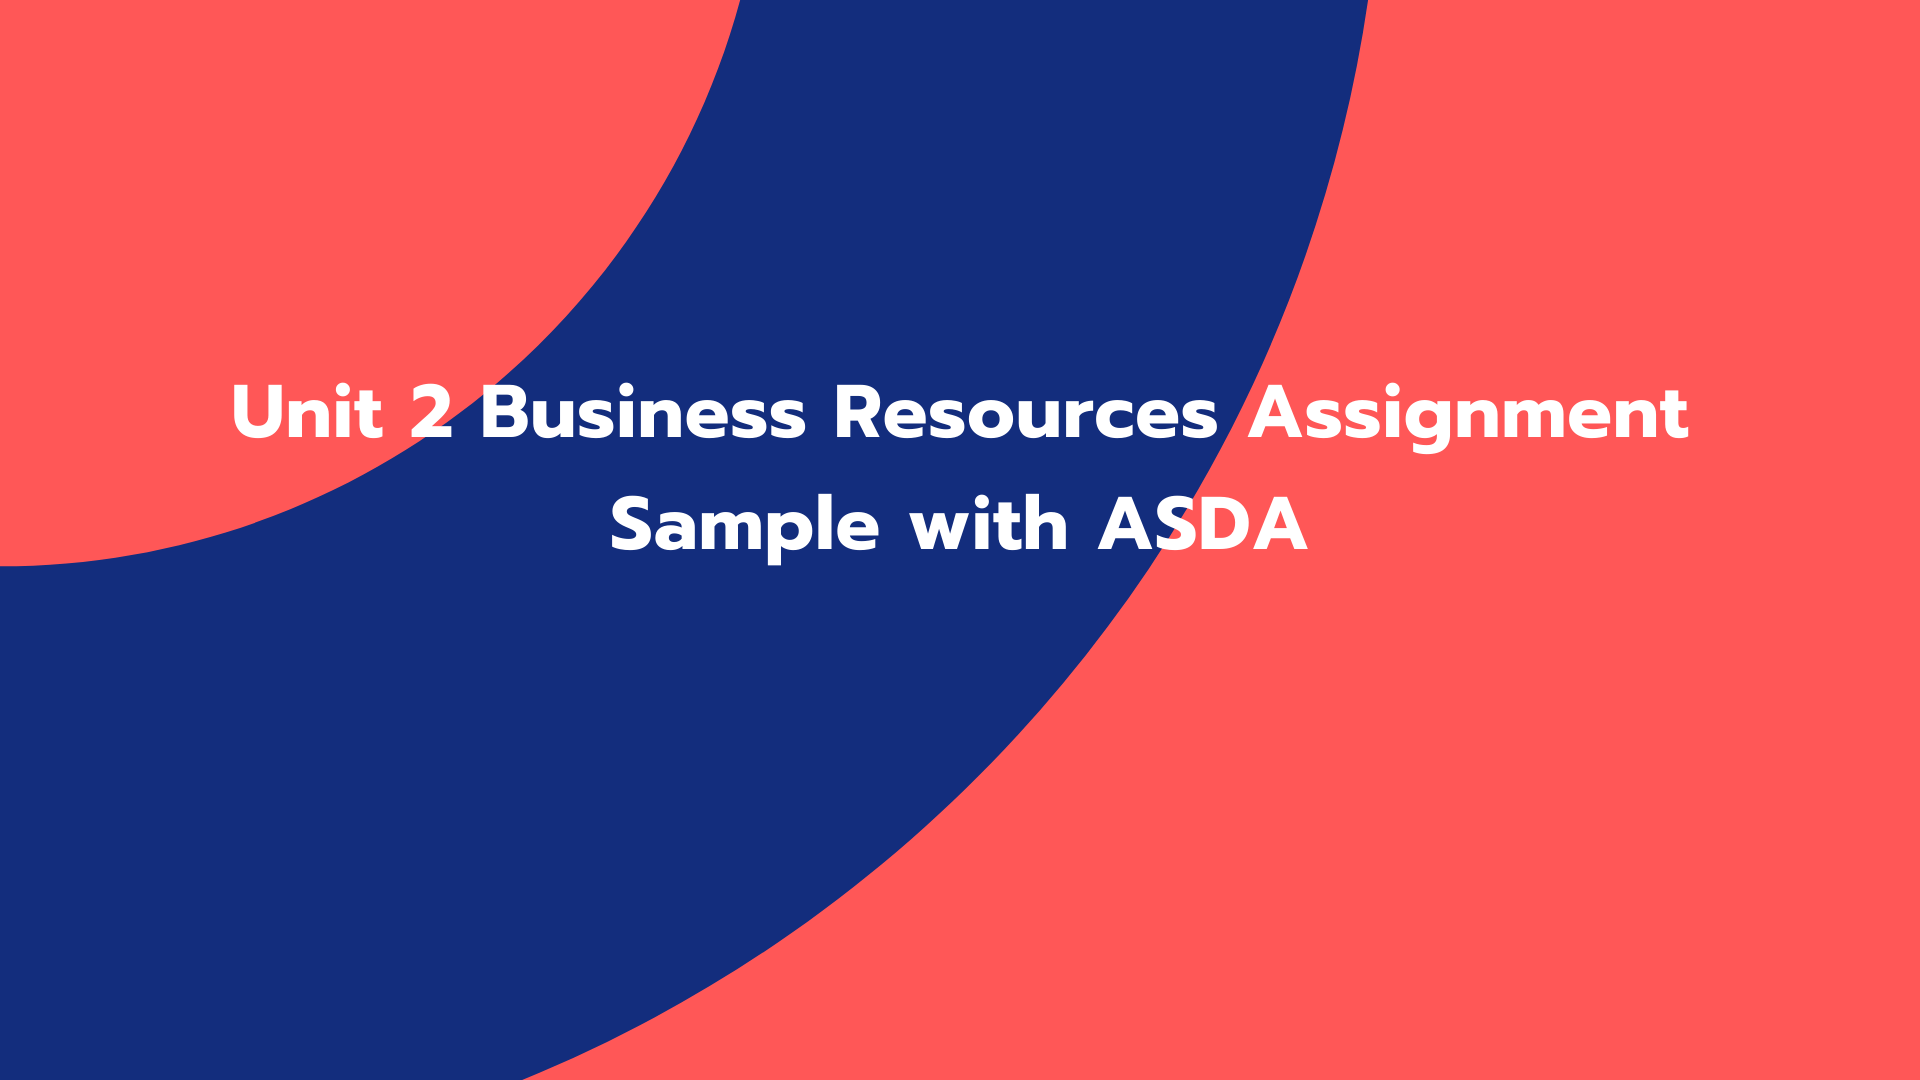 Unit 2 Business Resources Assignment Sample with ASDA